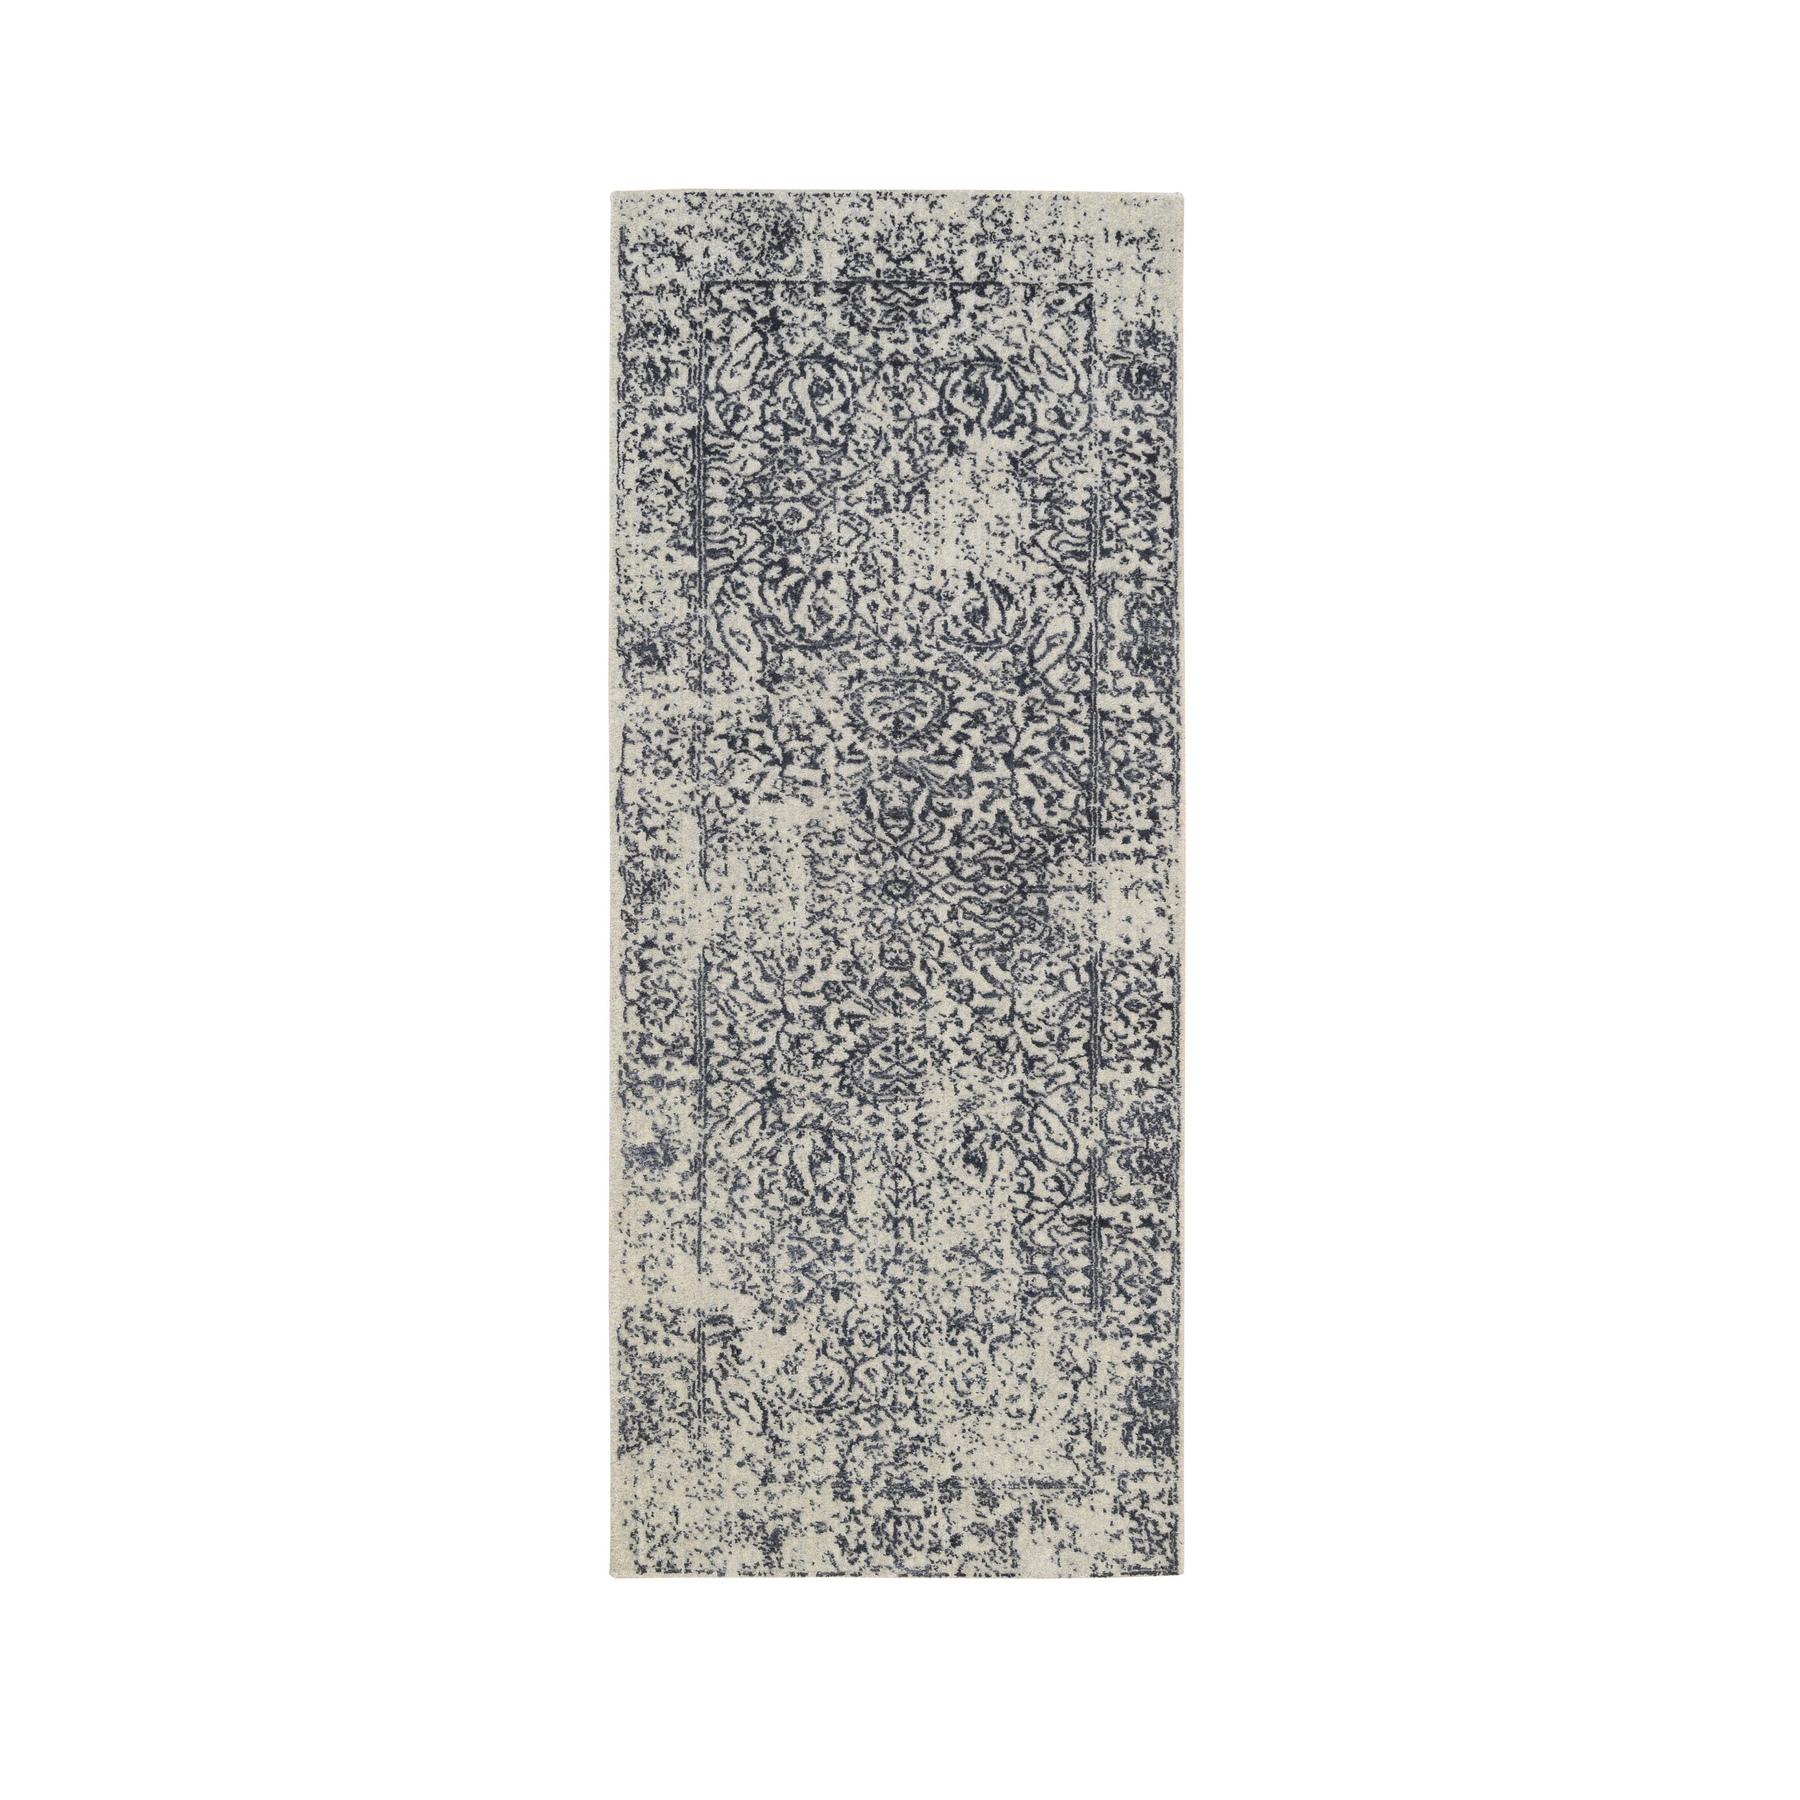 Mid Century Modern Collection Hand Loomed Grey Rug No: 1126524